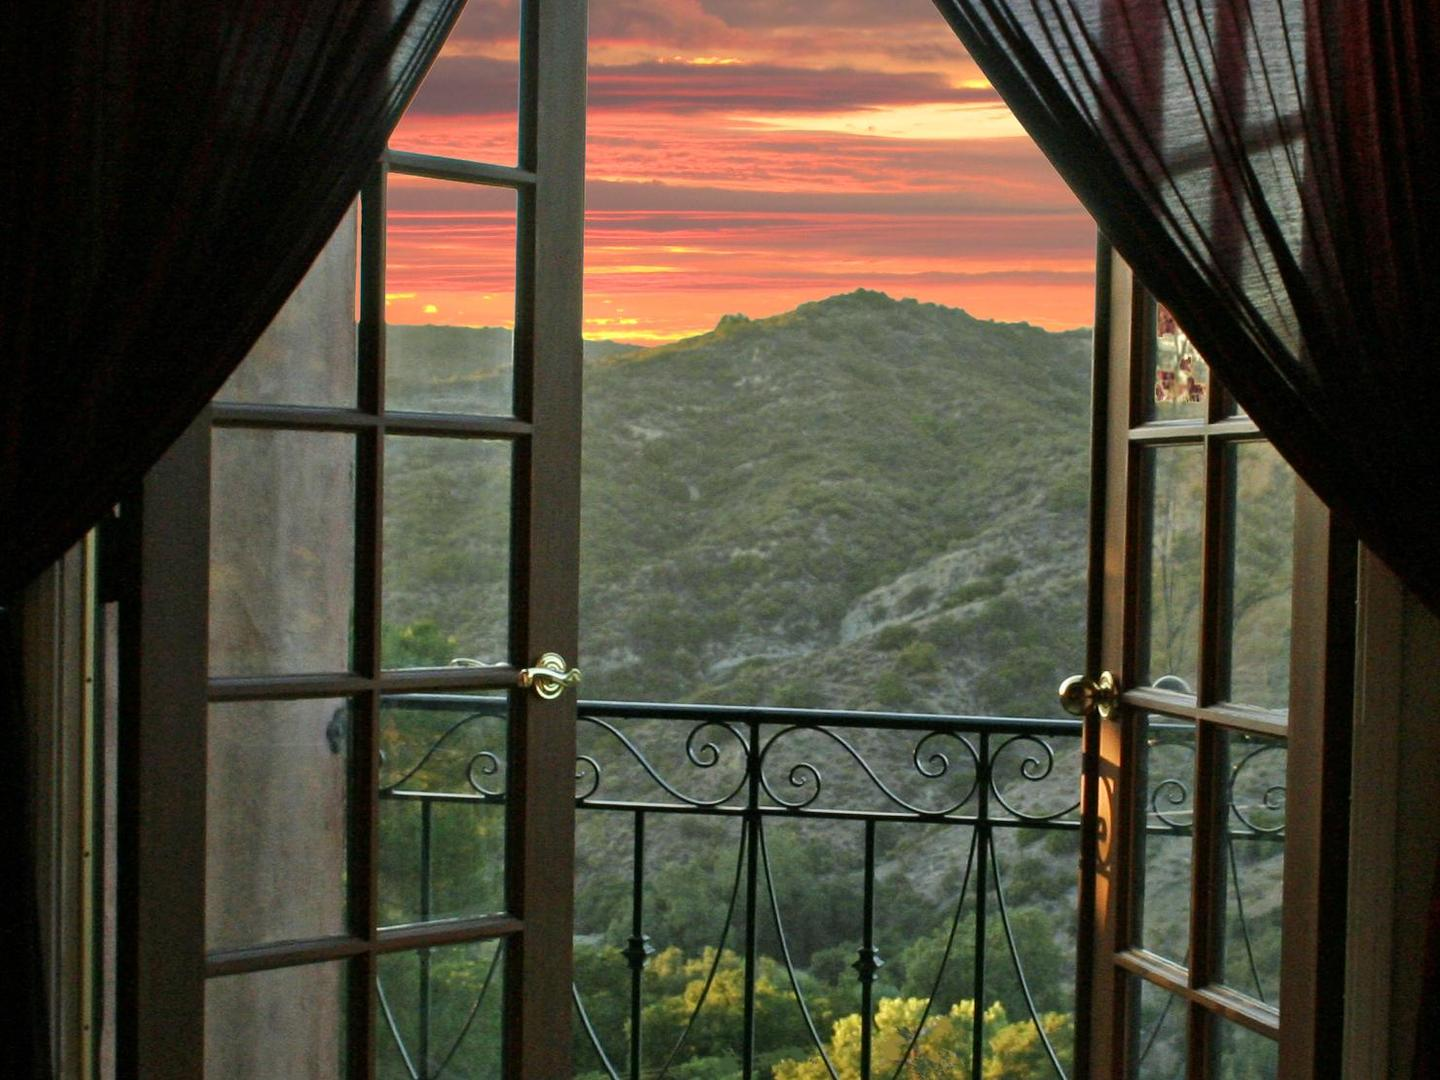 A view through a fence at Topanga Canyon Inn Bed and Breakfast.